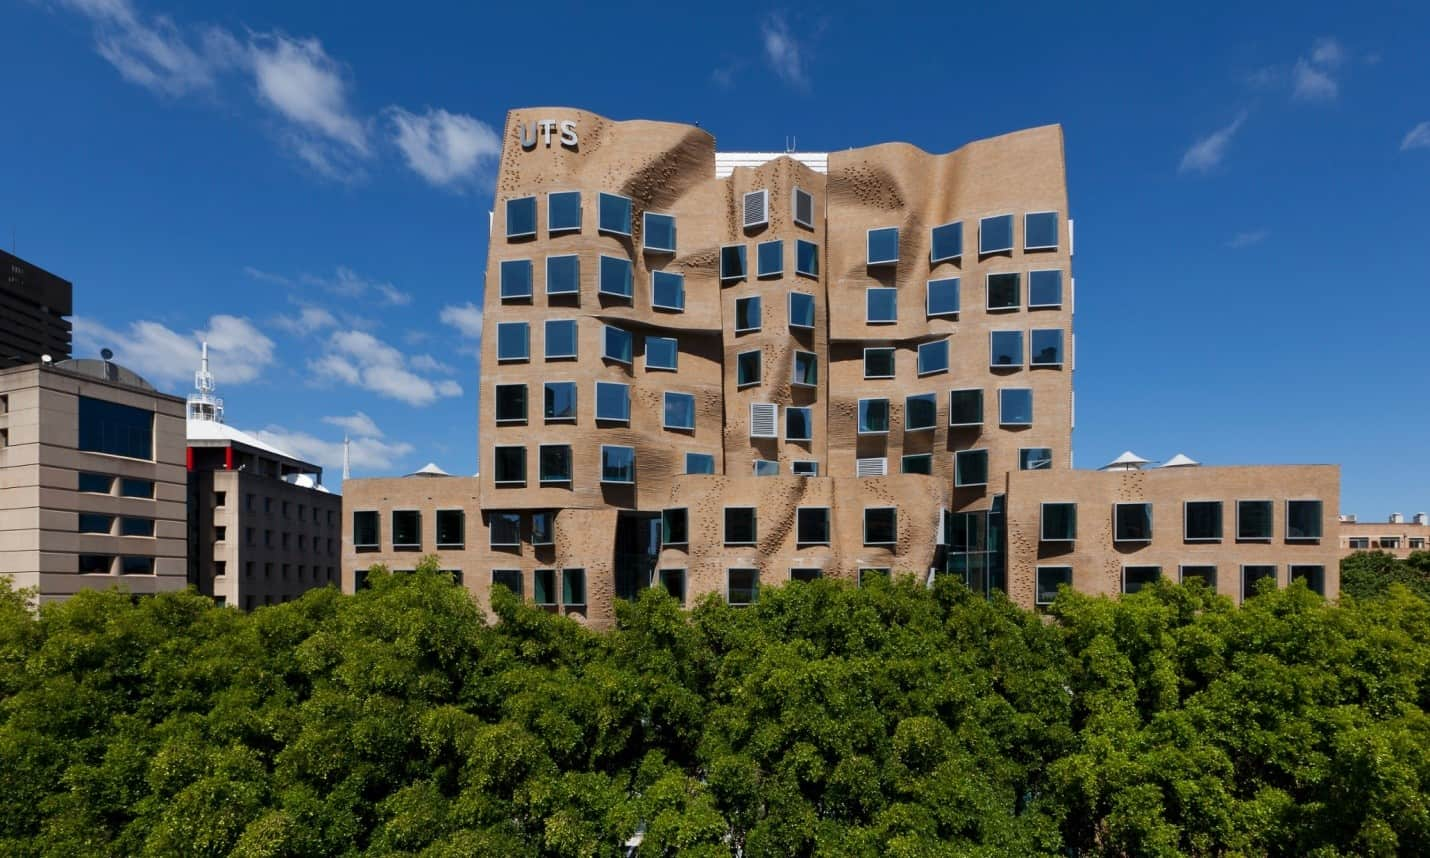 UTS Building - Frank Gehry